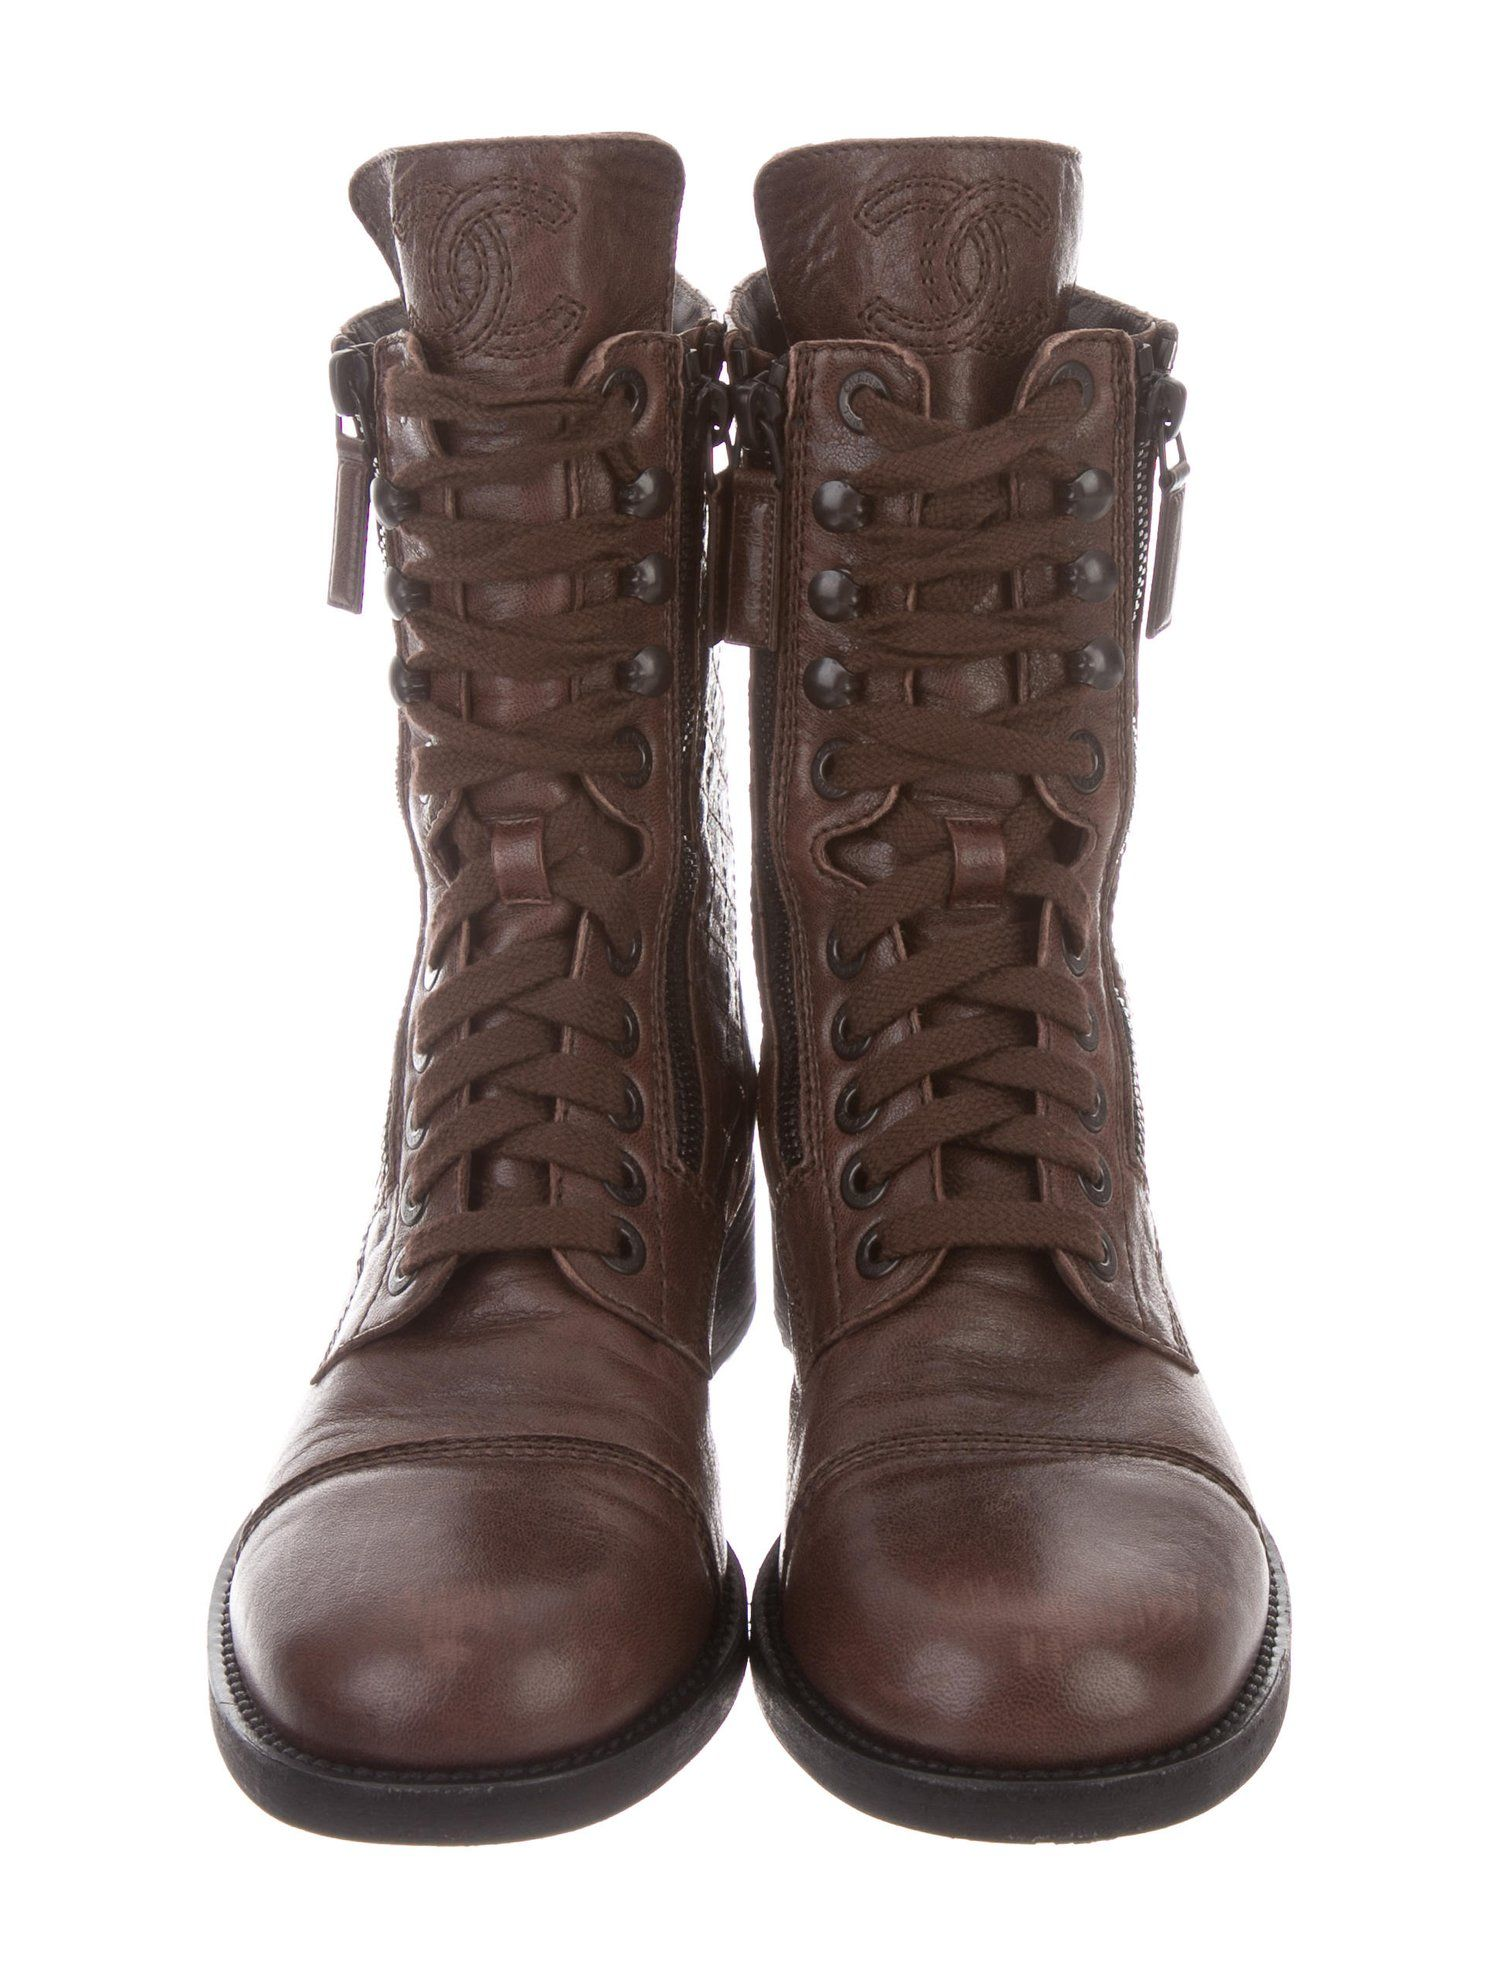 bd466206845 Chanel Quilted Combat Boots  Quilted  Chanel  Boots